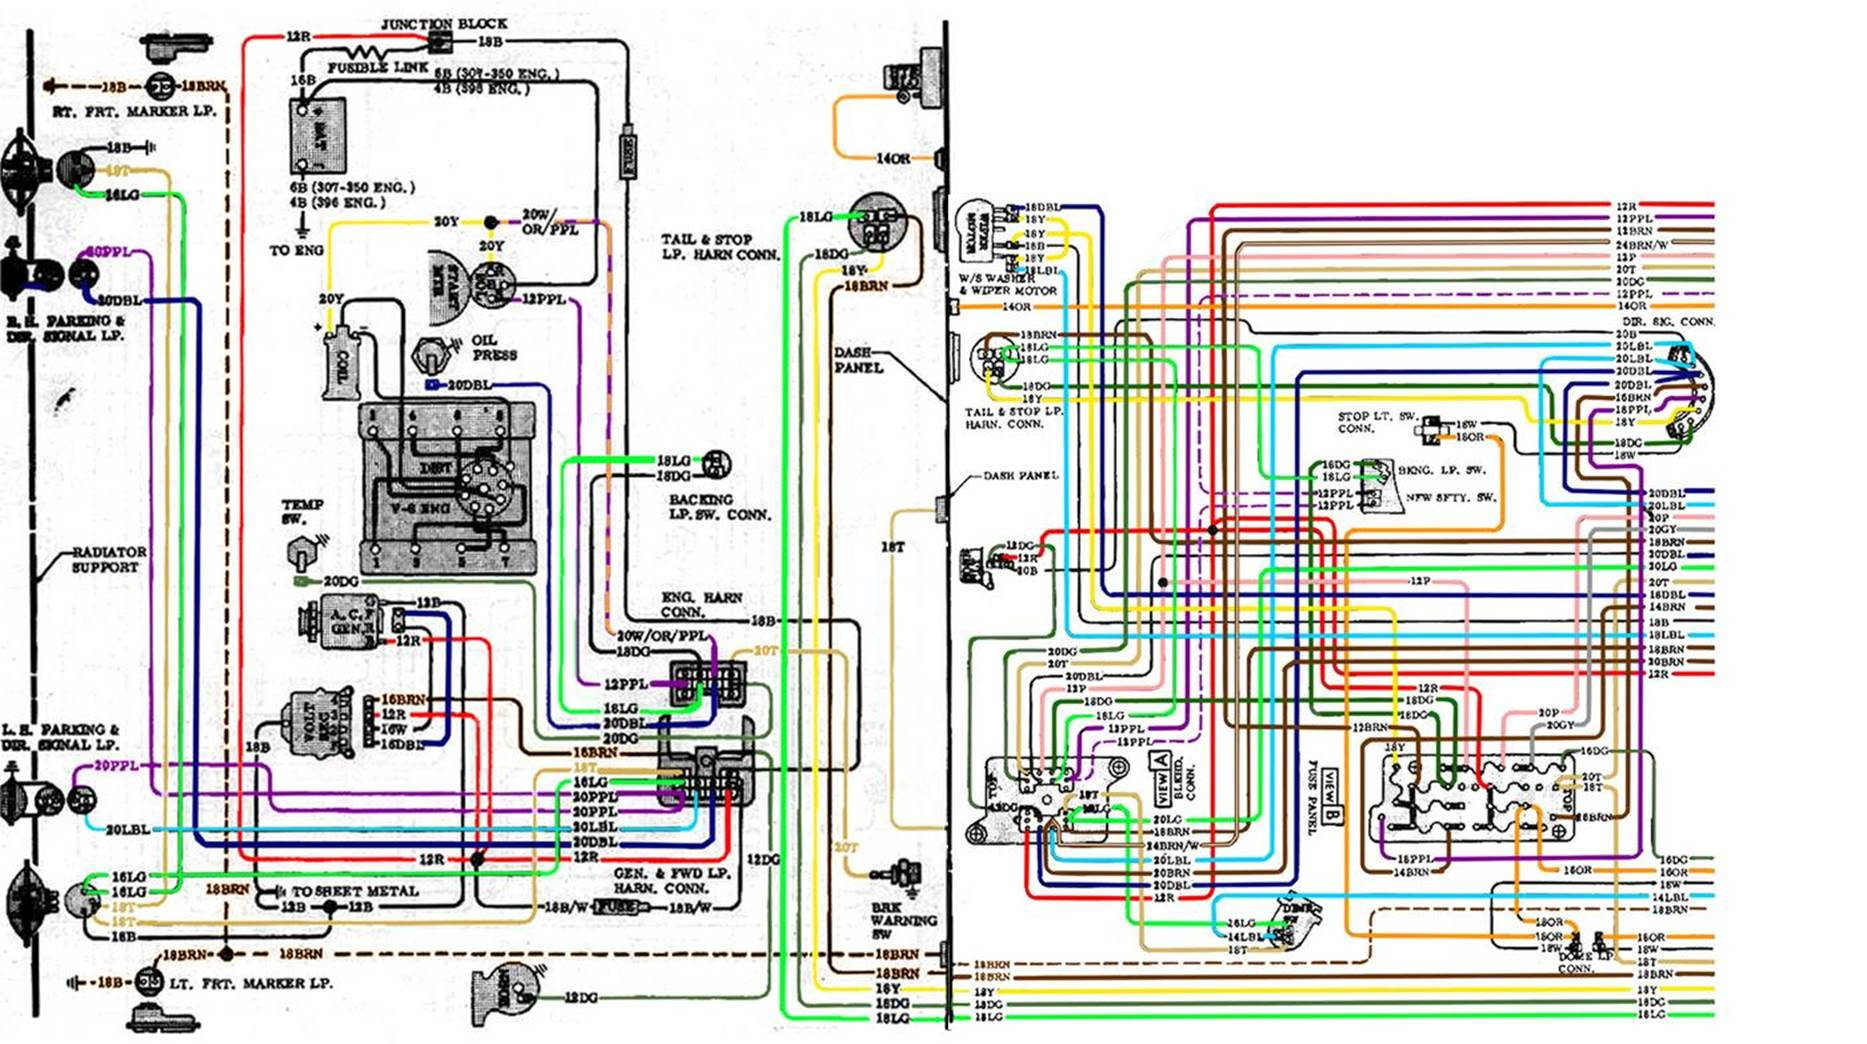 image002 67 72 chevy wiring diagram  at mifinder.co